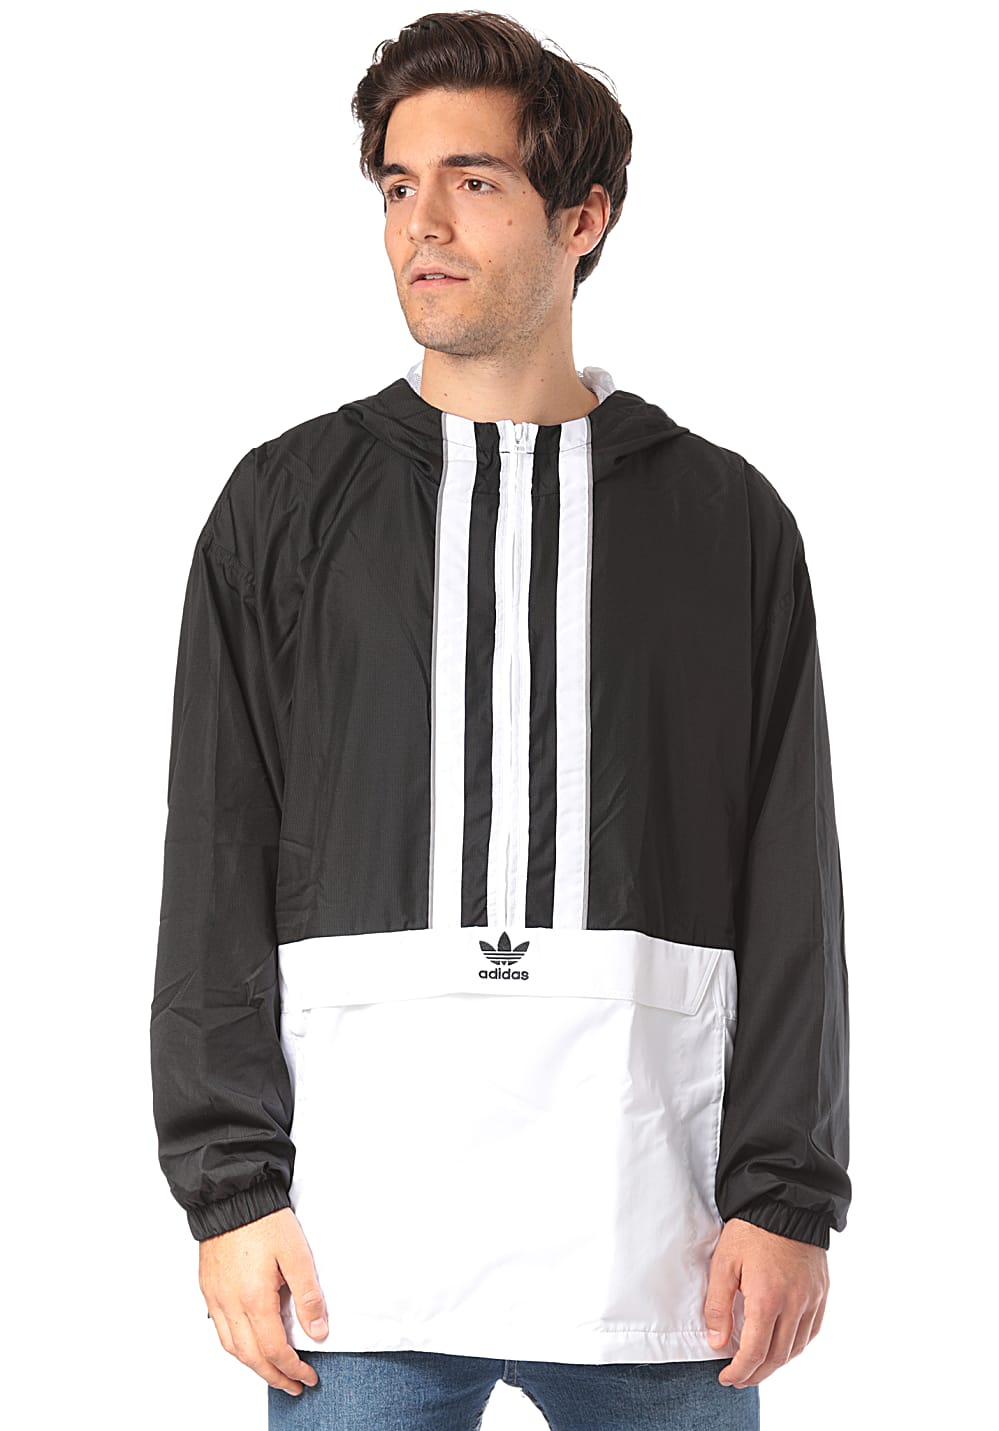 the cheapest great look clearance prices ADIDAS ORIGINALS Auth - Jacket for Men - Black